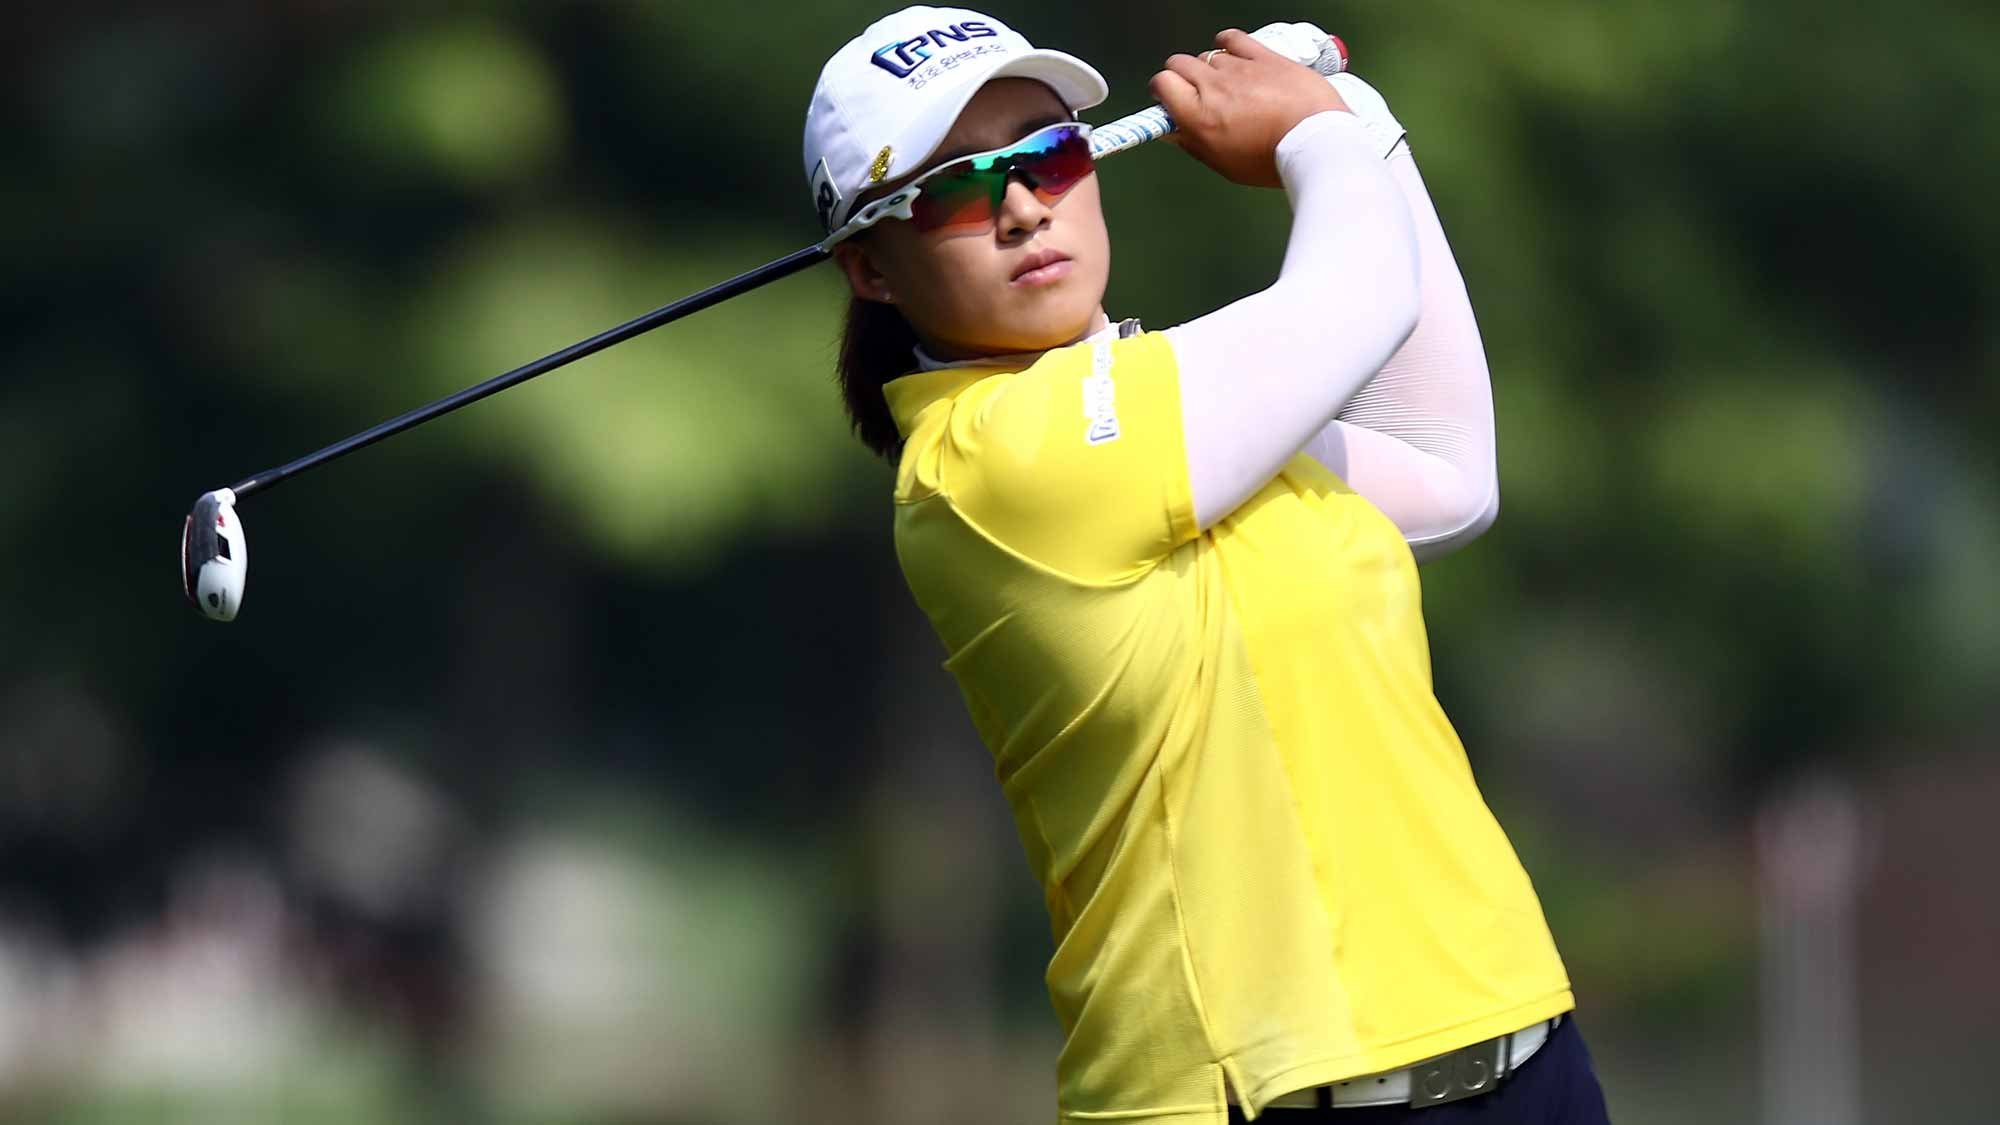 Amy Yang of South Korea plays her 2nd shot on the 8th hole during round one of the Sime Darby LPGA Tour at Kuala Lumpur Golf & Country Club